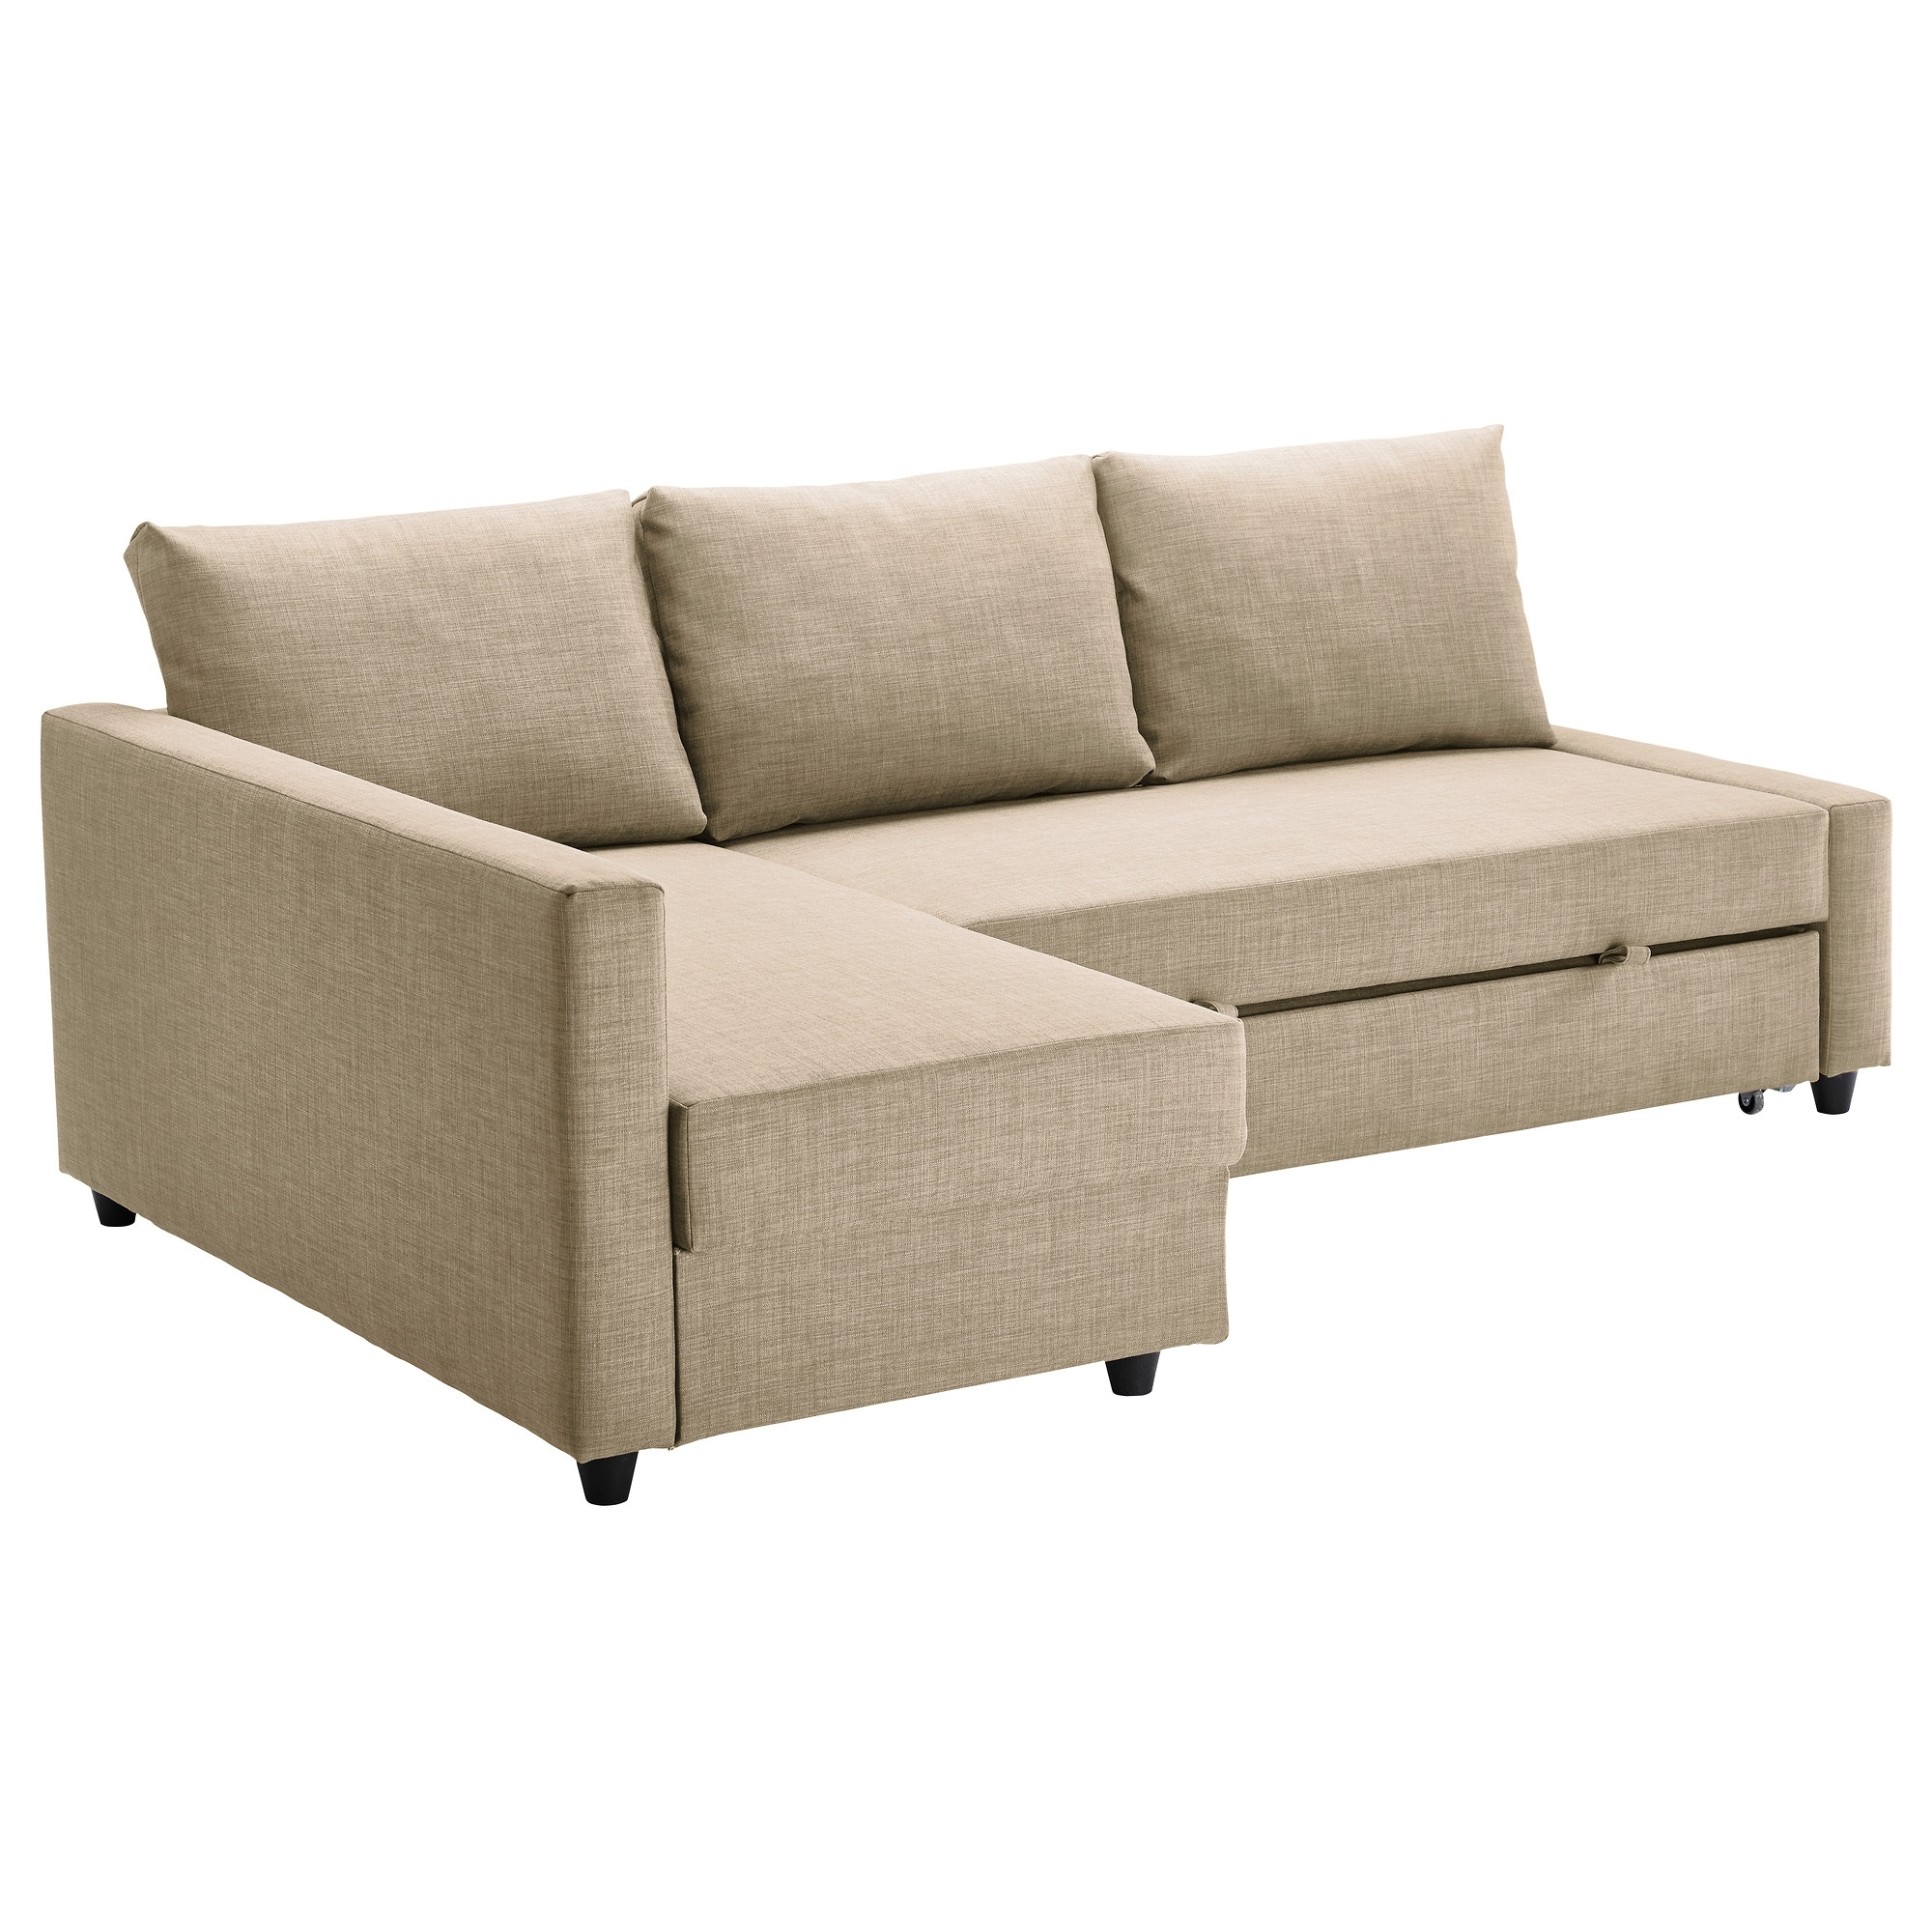 Famous Chaise Sofa Sleepers In Friheten Sleeper Sectional,3 Seat W/storage – Skiftebo Dark Gray (View 7 of 15)